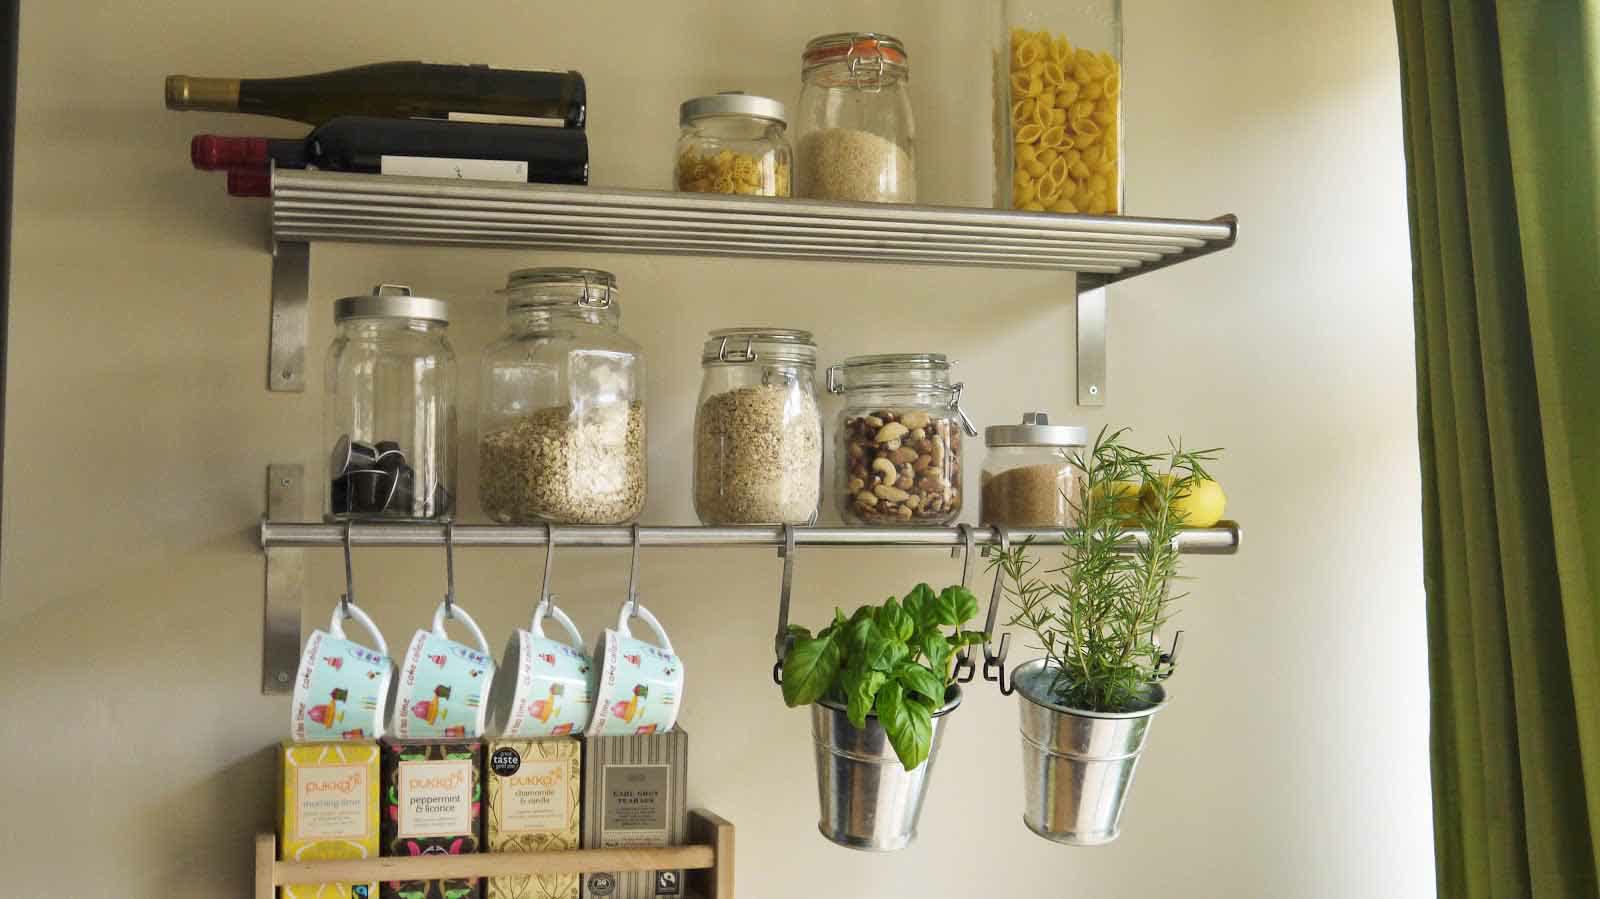 Dining Room Storage Ideas To Keep Your Scheme Clutter Free: 11 Clever And Easy Kitchen Organization Ideas You'll Love